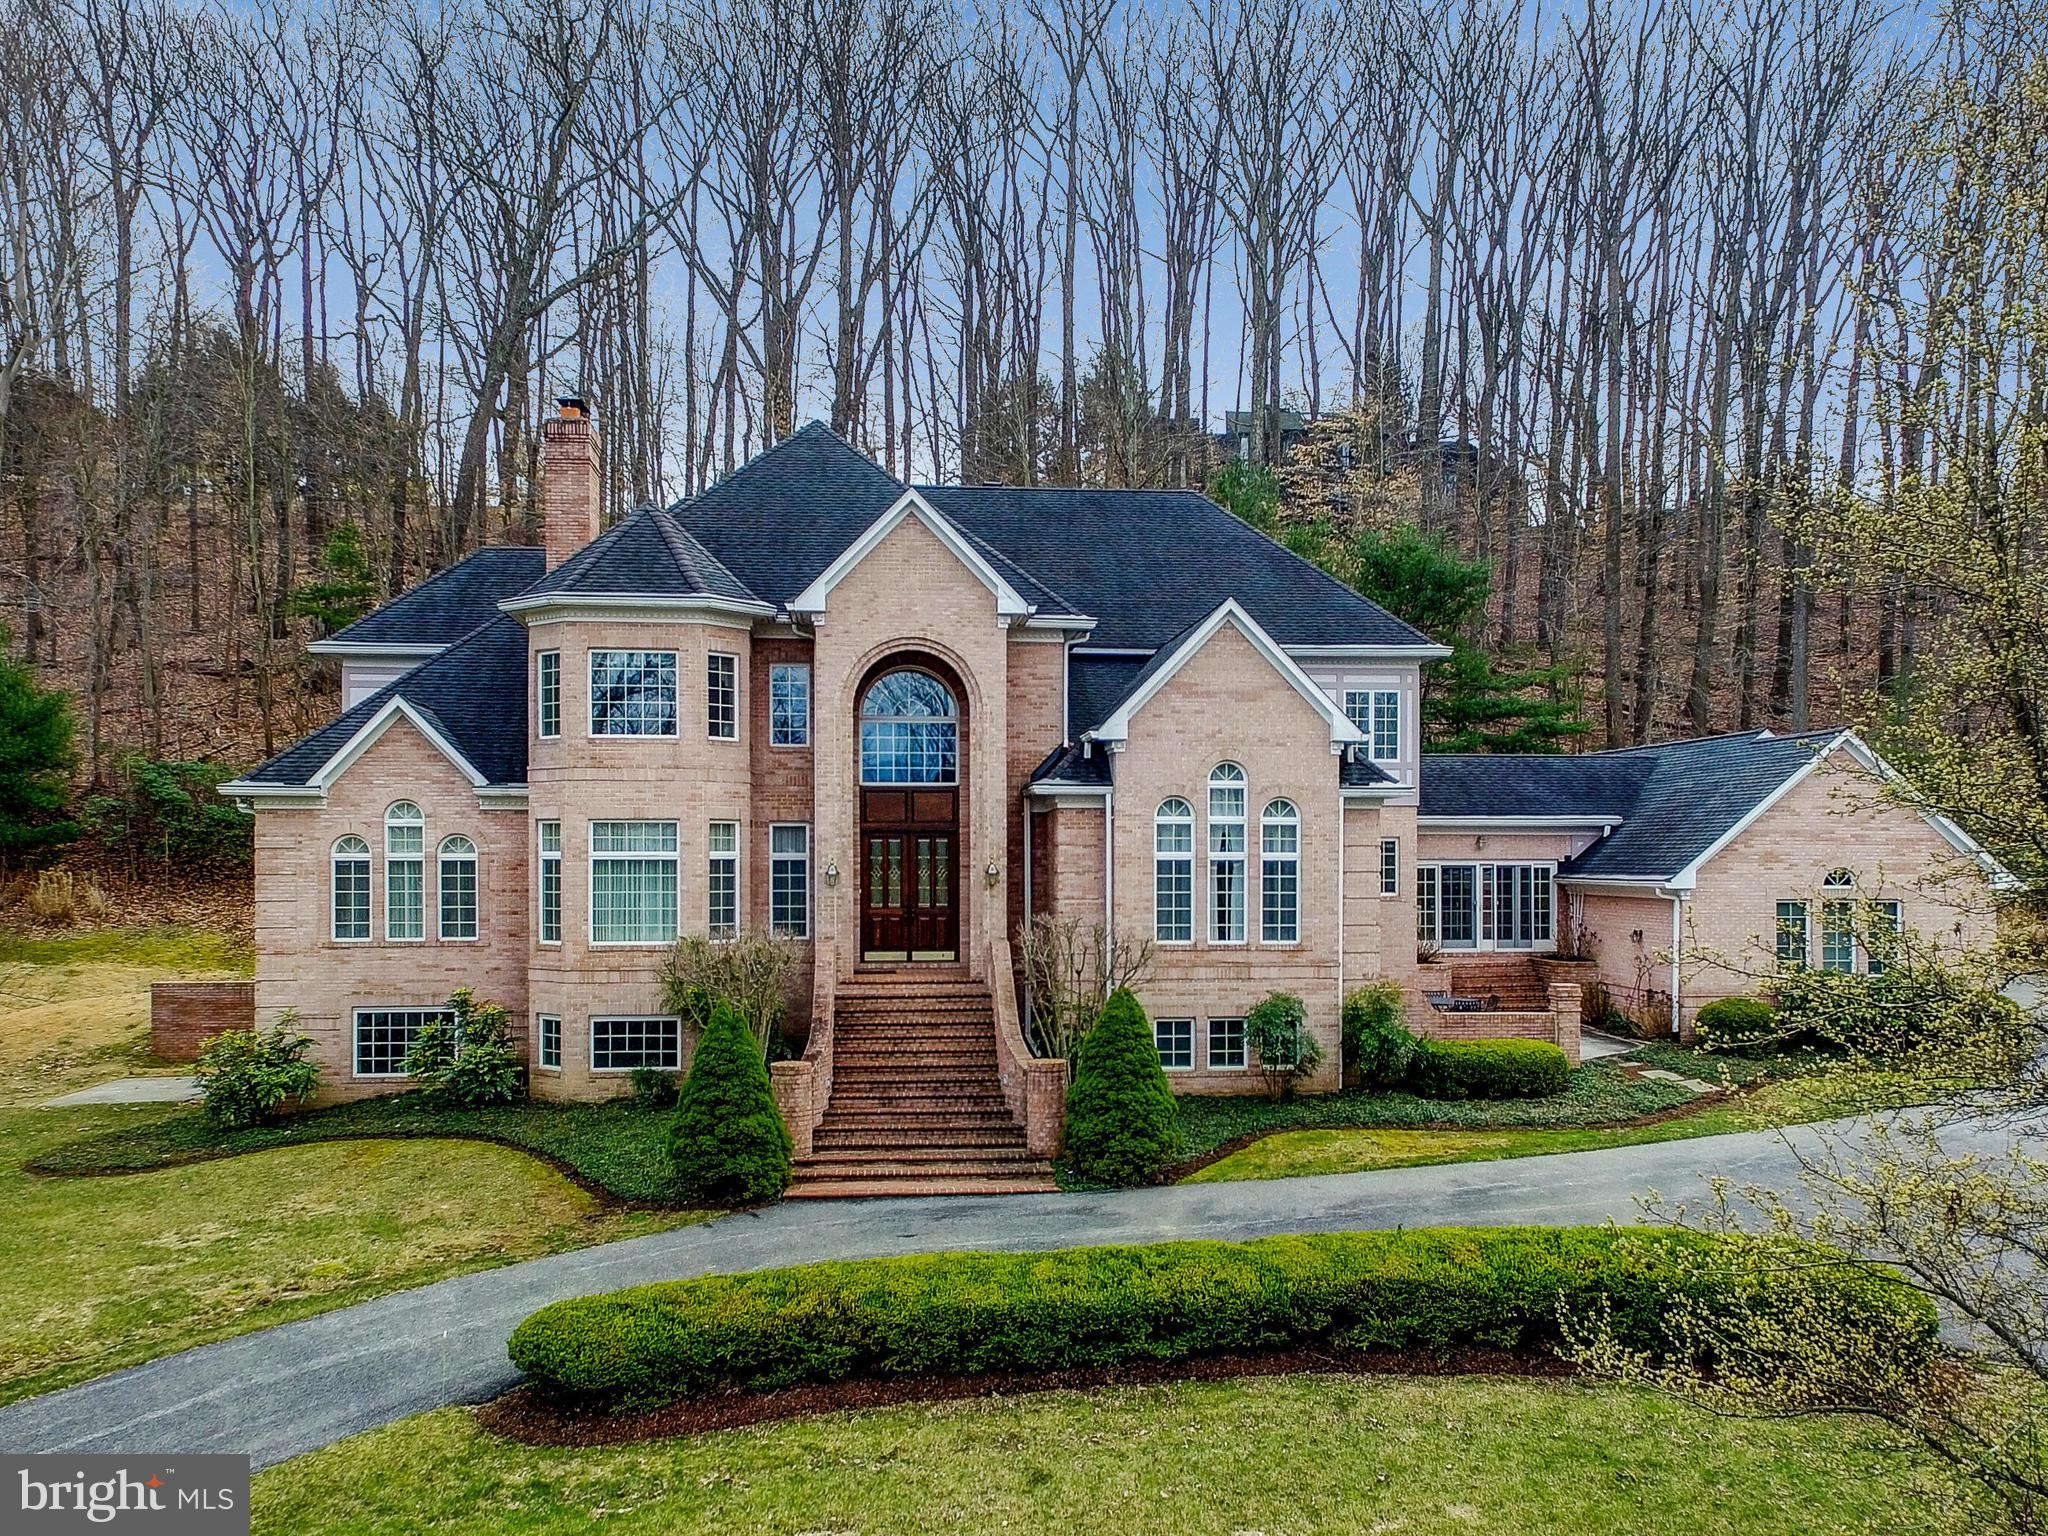 34 MERRY HILL COURT, BALTIMORE, MD 21208